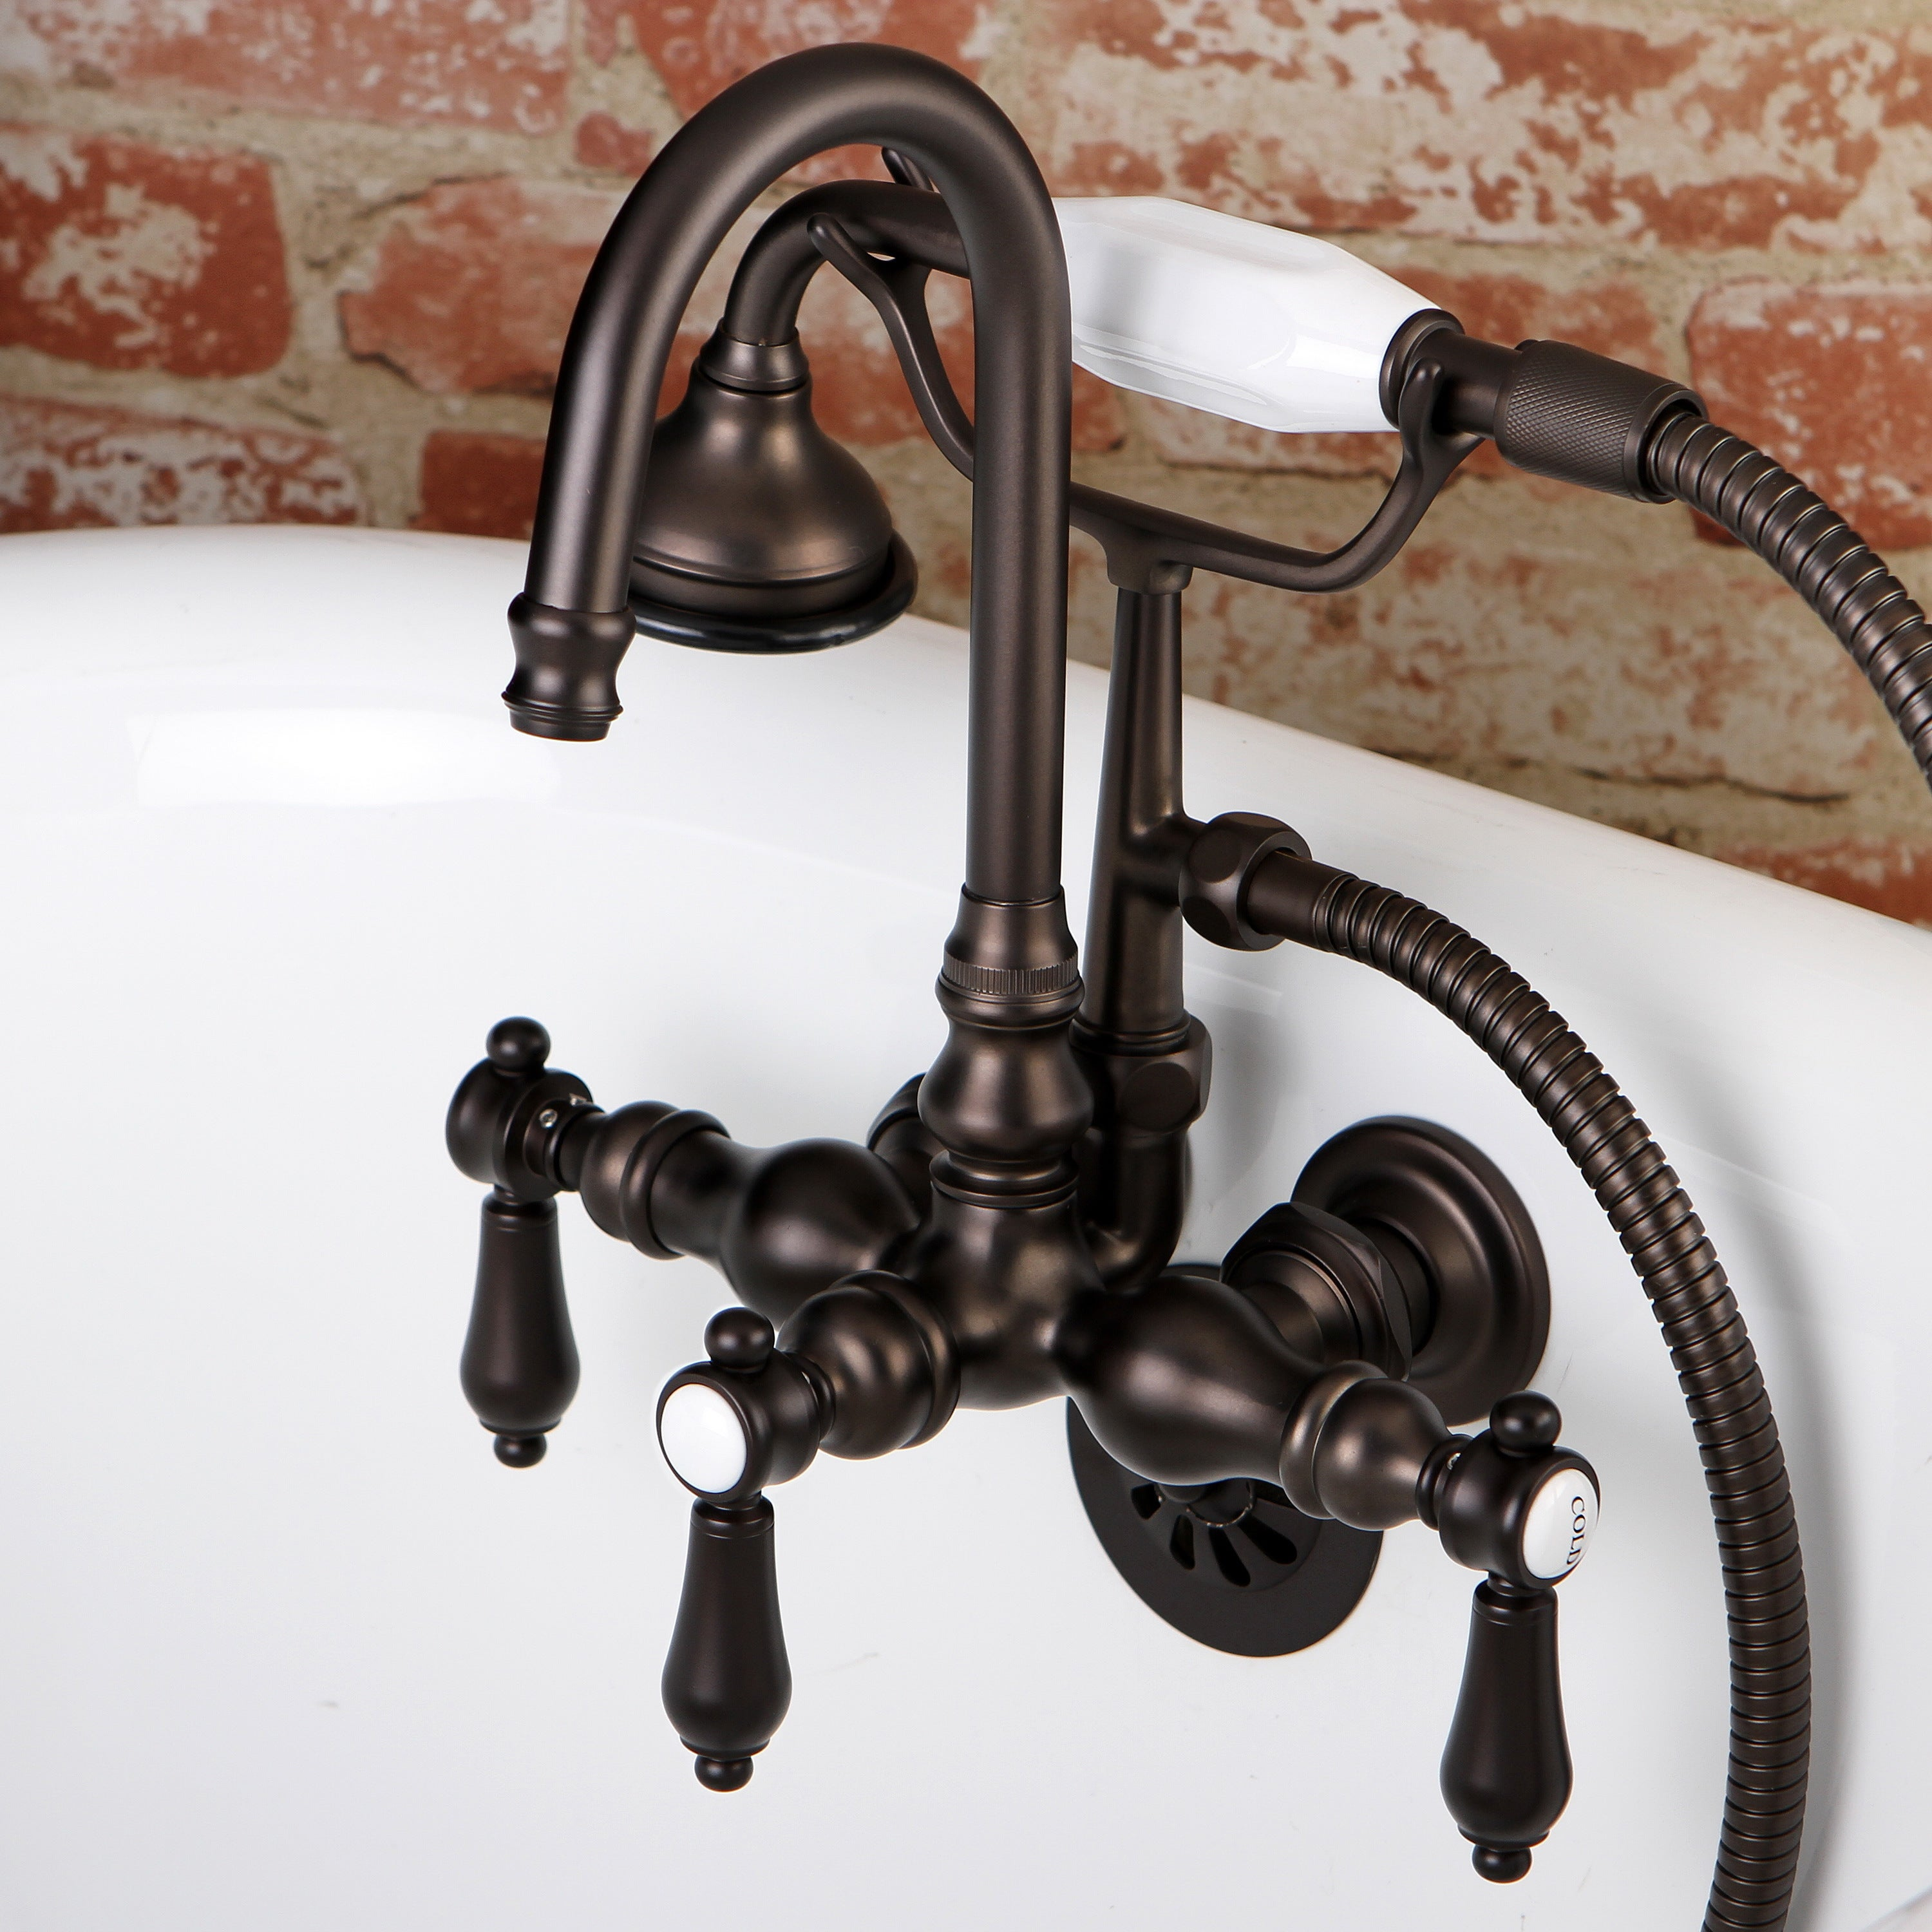 Bathtub Wall Mount Claw Foot Tub Filler With Handshower In Oil Rubbed Bronze